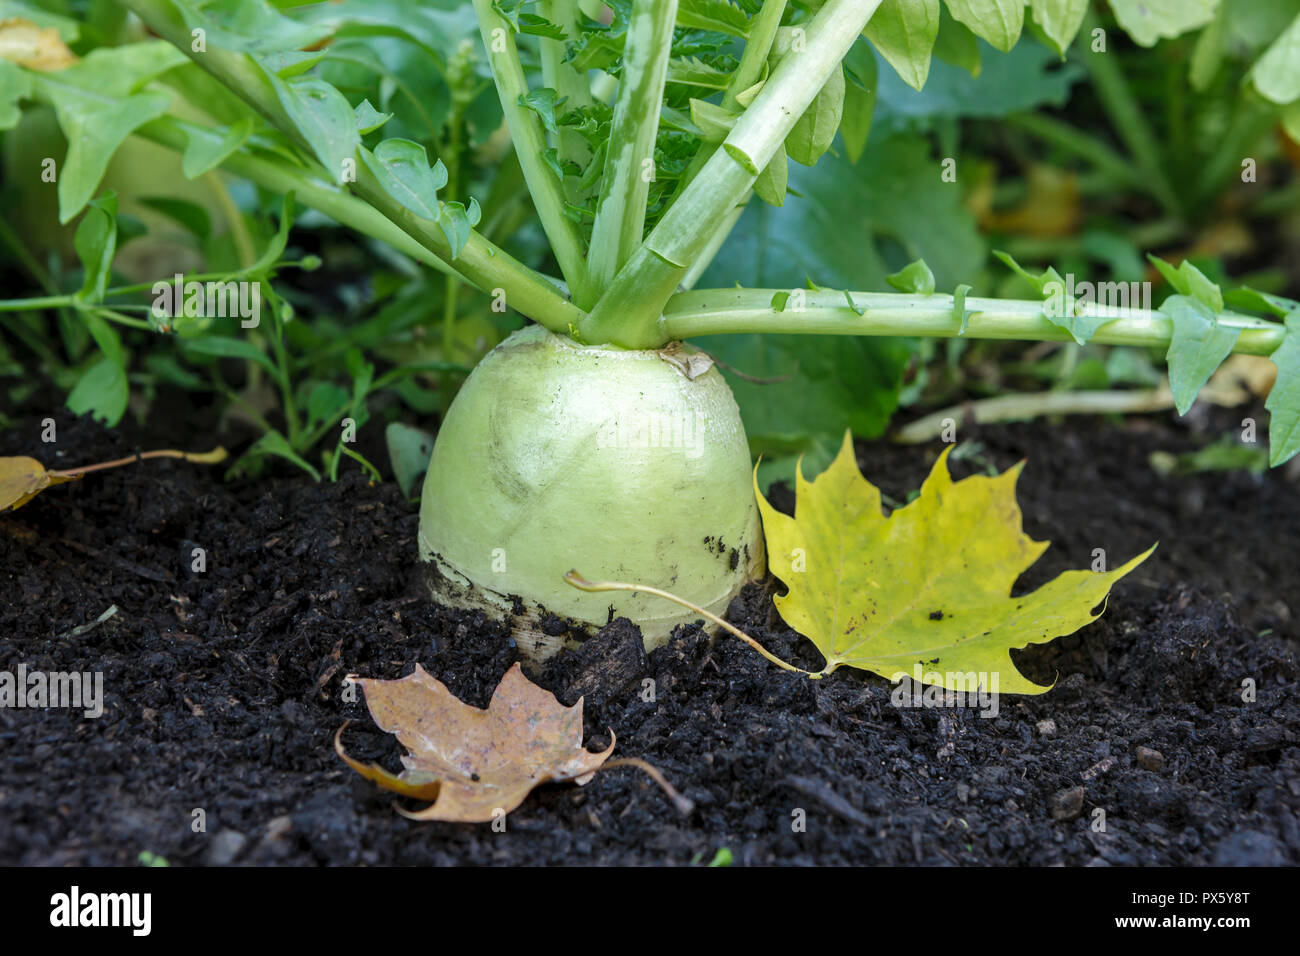 A large chinese radish is partly out of the soil in a garden. - Stock Image